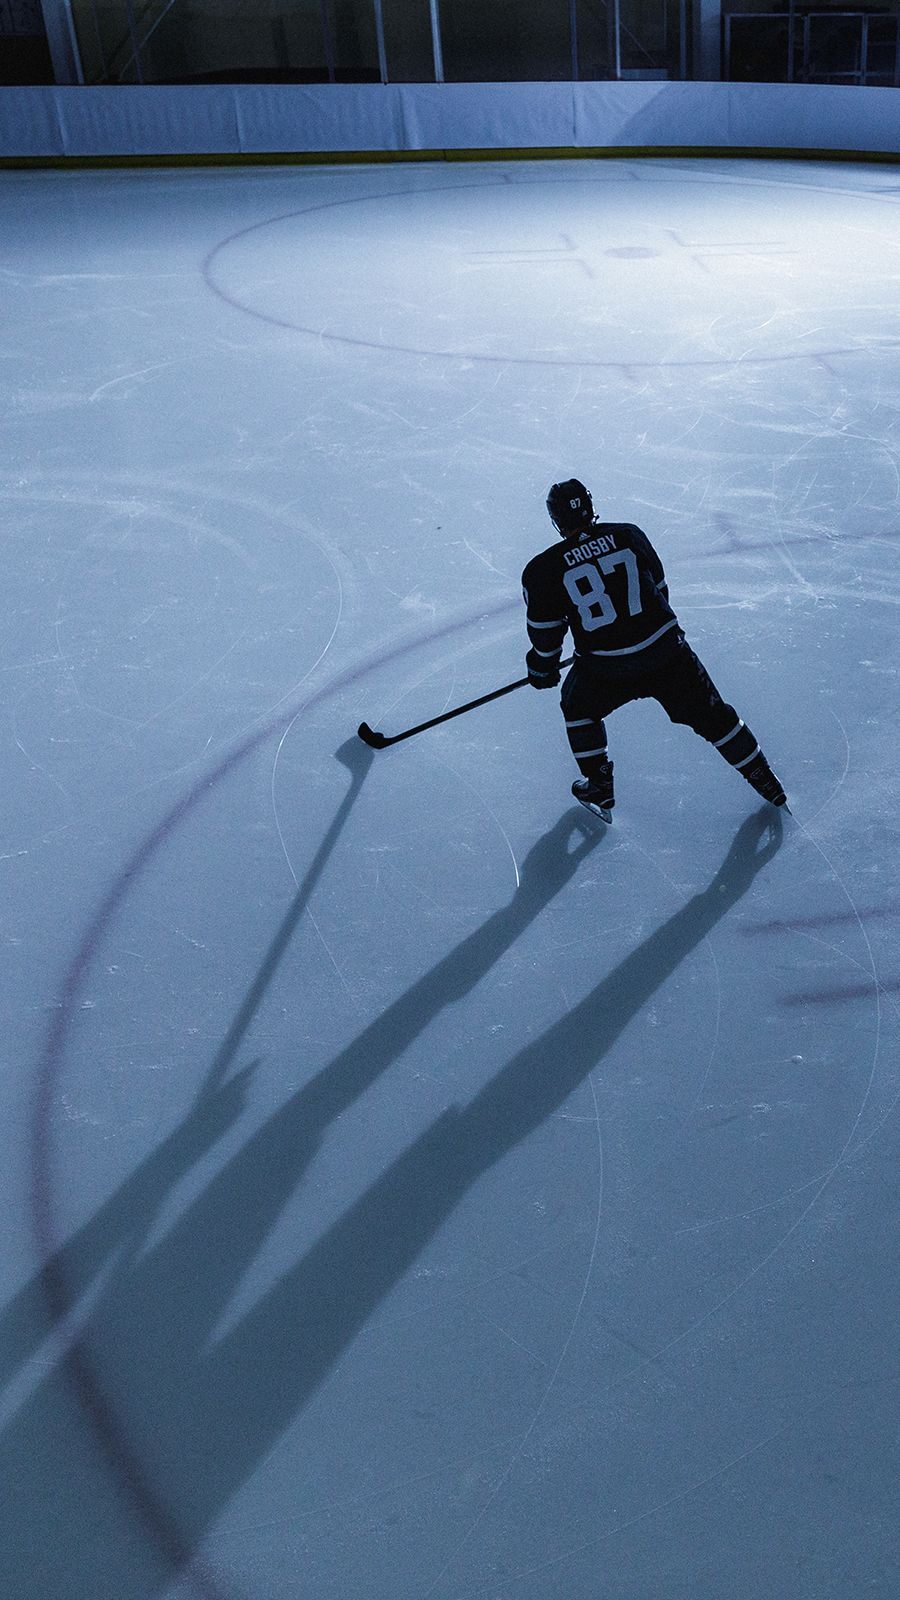 Hockey Iphone Wallpapers Top Free Hockey Iphone Backgrounds Wallpaperaccess